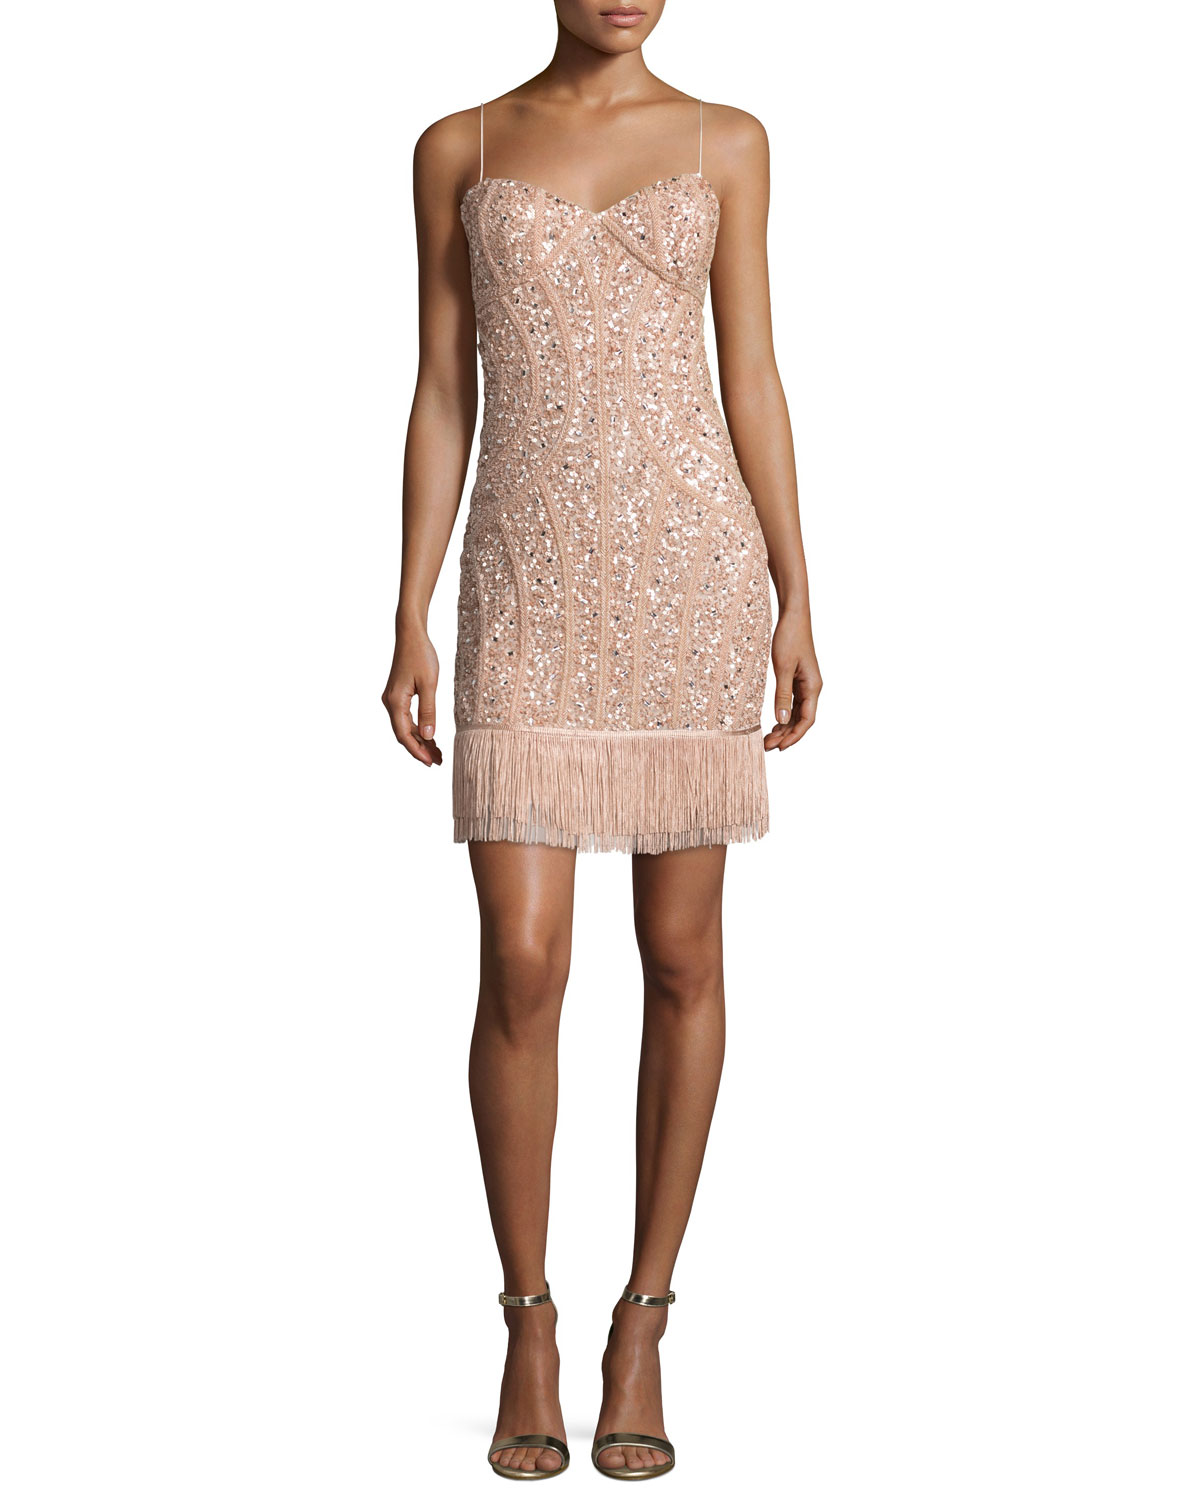 98a113520ef0 Aidan Mattox Sequined Fringe Cocktail Dress, Blush | Neiman Marcus